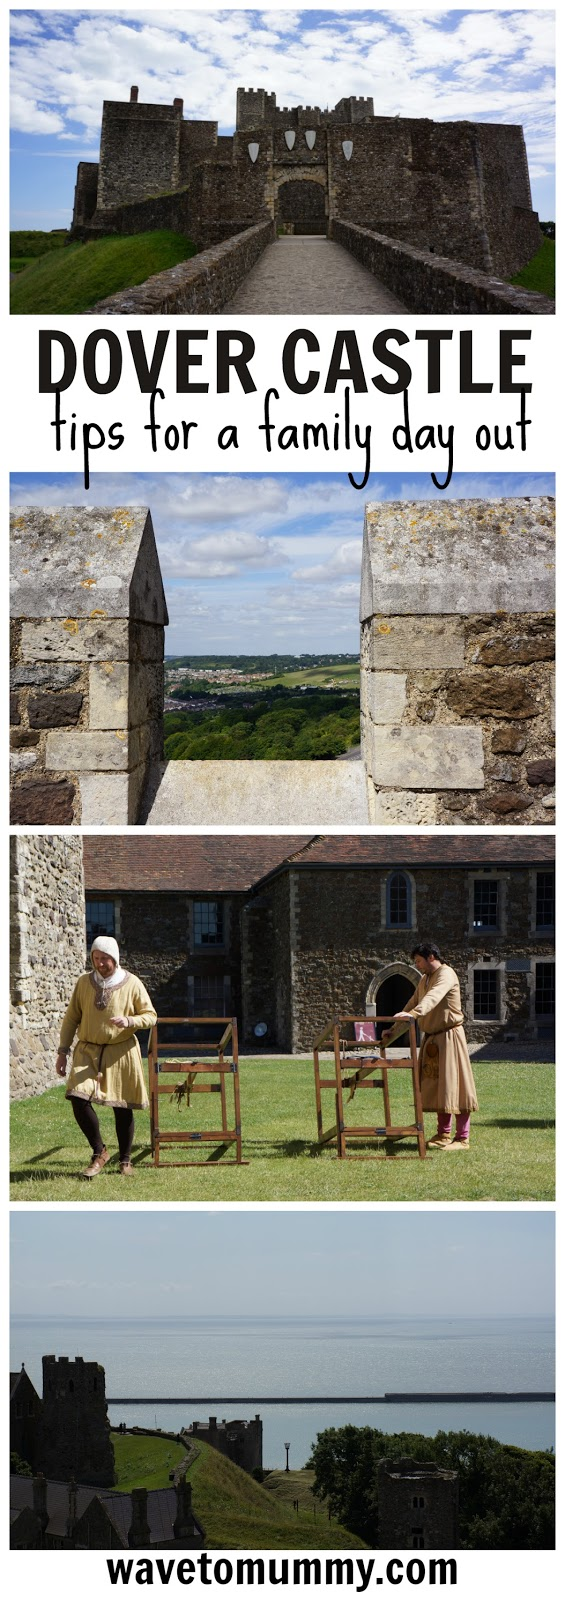 A family day out at Dover Castle - Dover Castle is a gorgeous location right on the coast and one of English Heritage sites. It is a great place to visit with family. This post includes a lot of pictures and tips for a perfect family day out. Click on the post to see more.